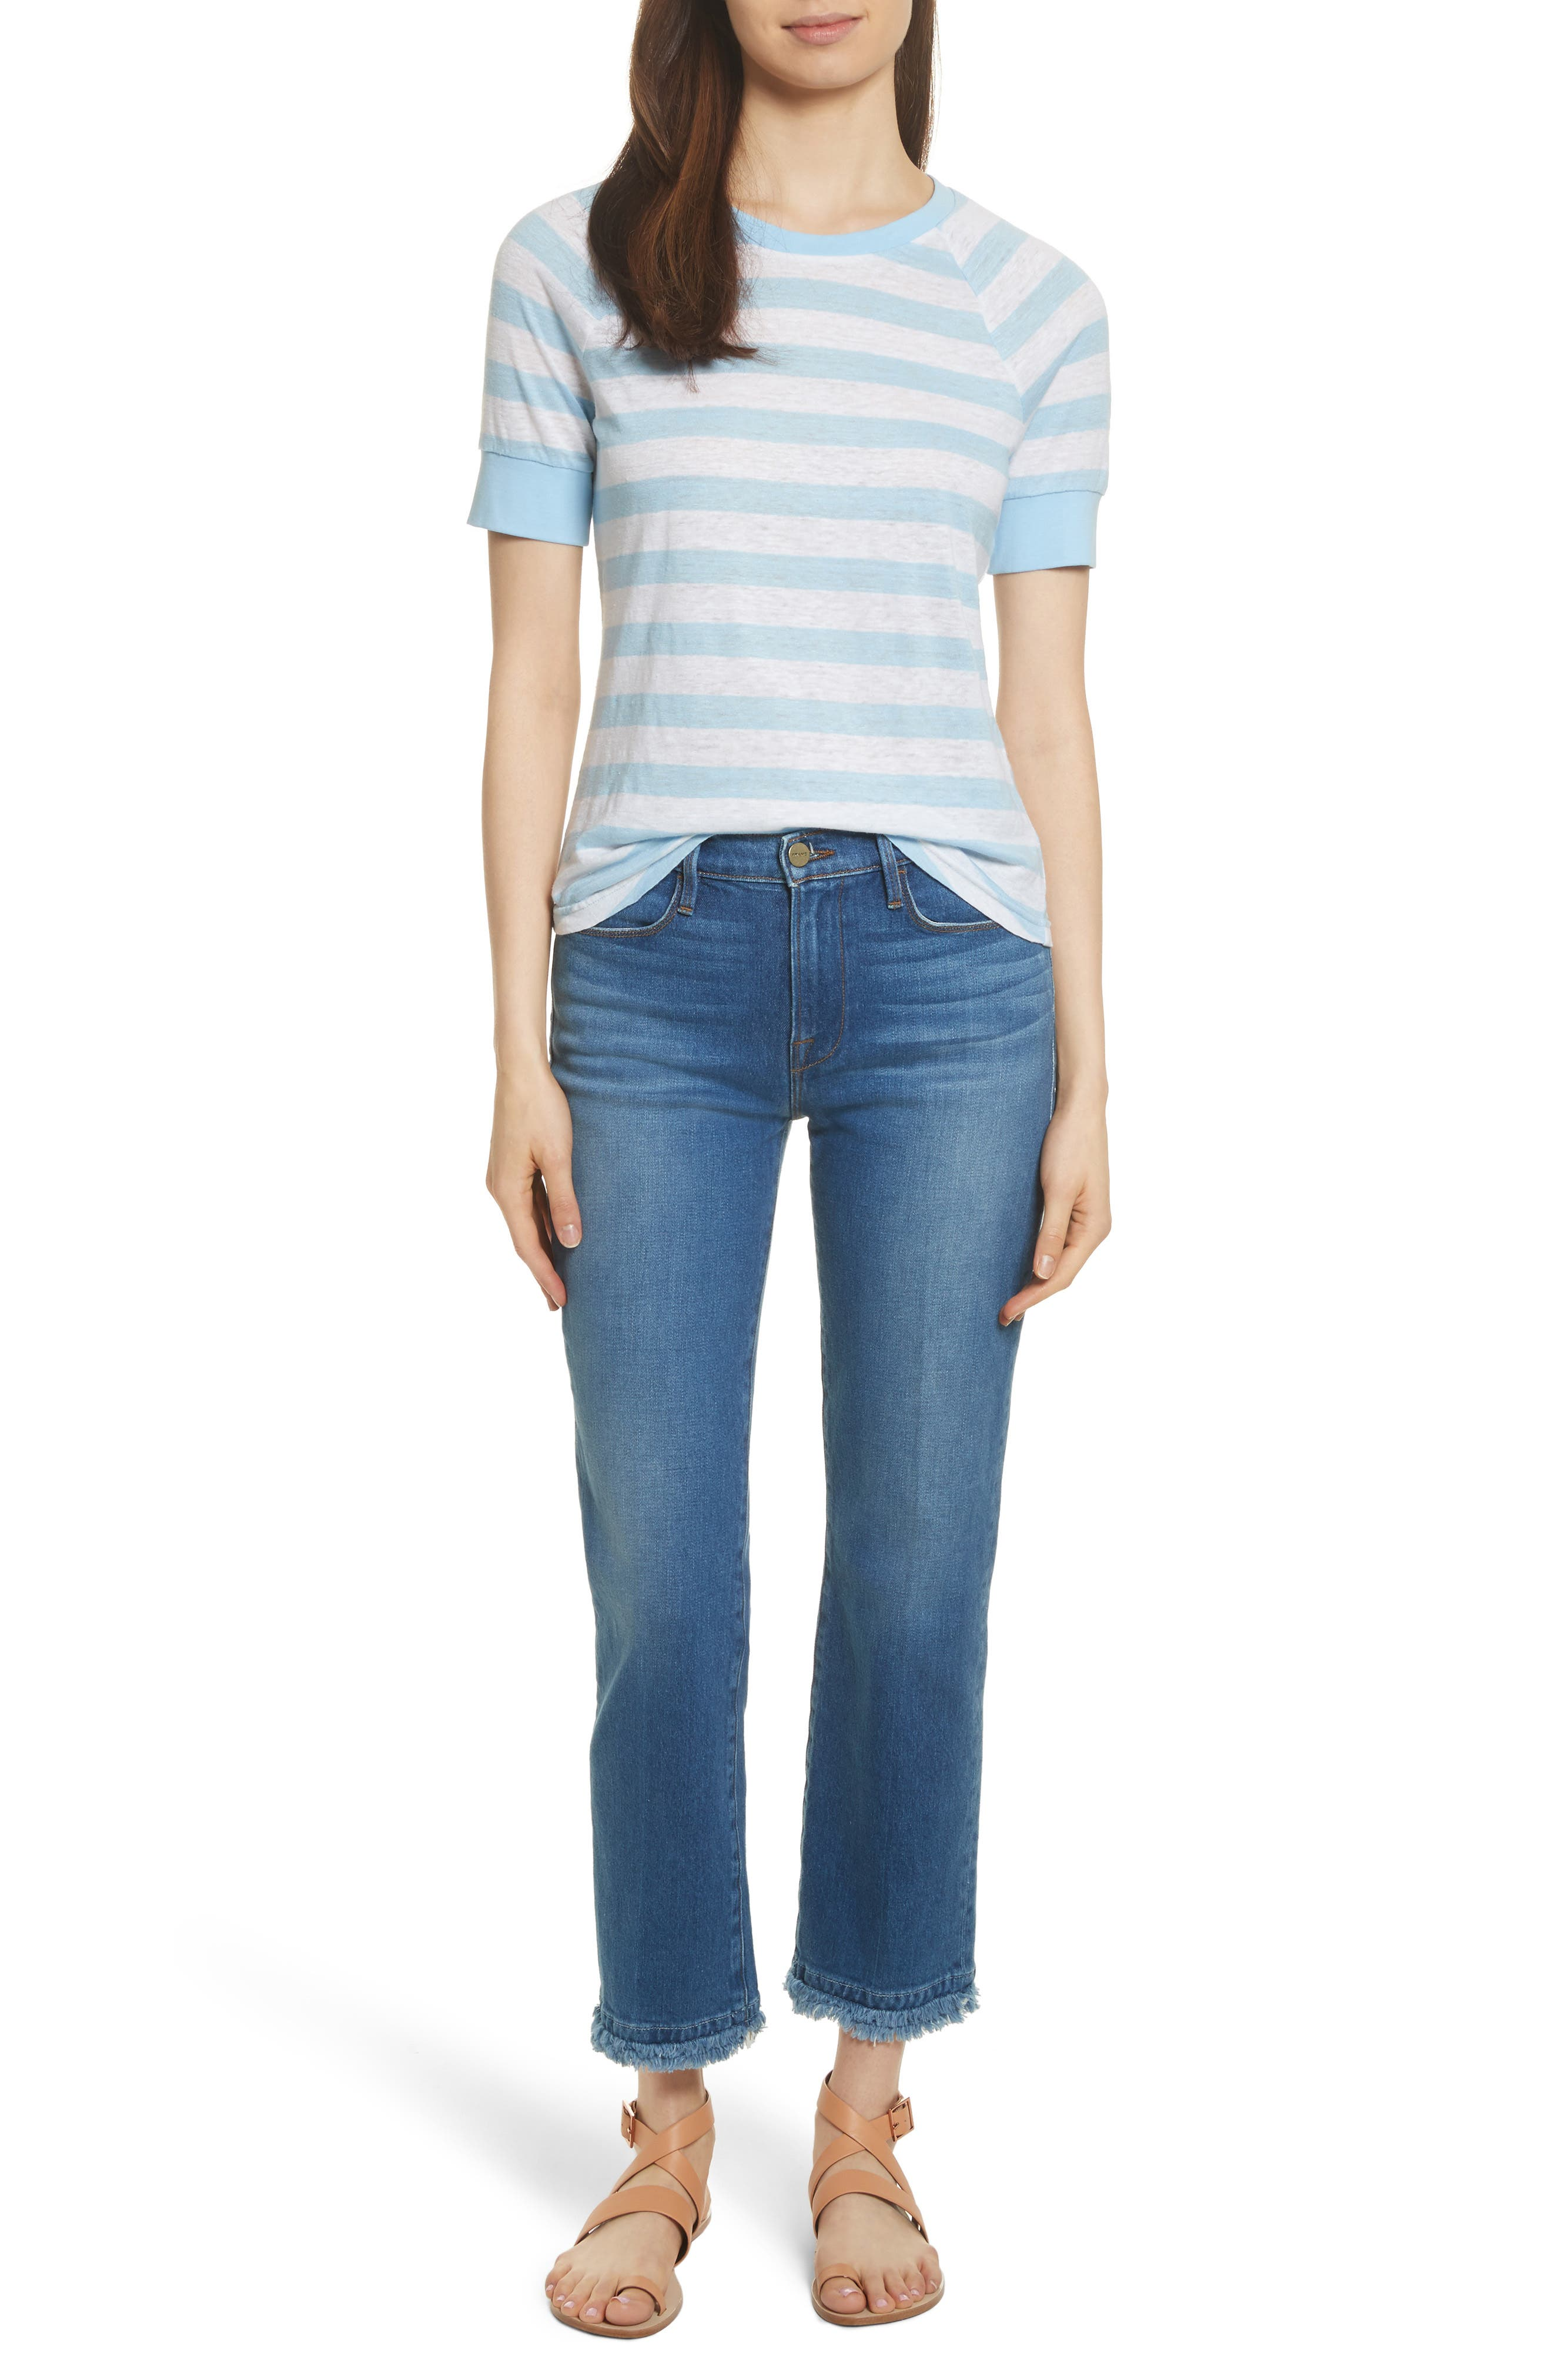 Le High Double Raw Edge High Waist Jeans,                             Alternate thumbnail 8, color,                             Whitway